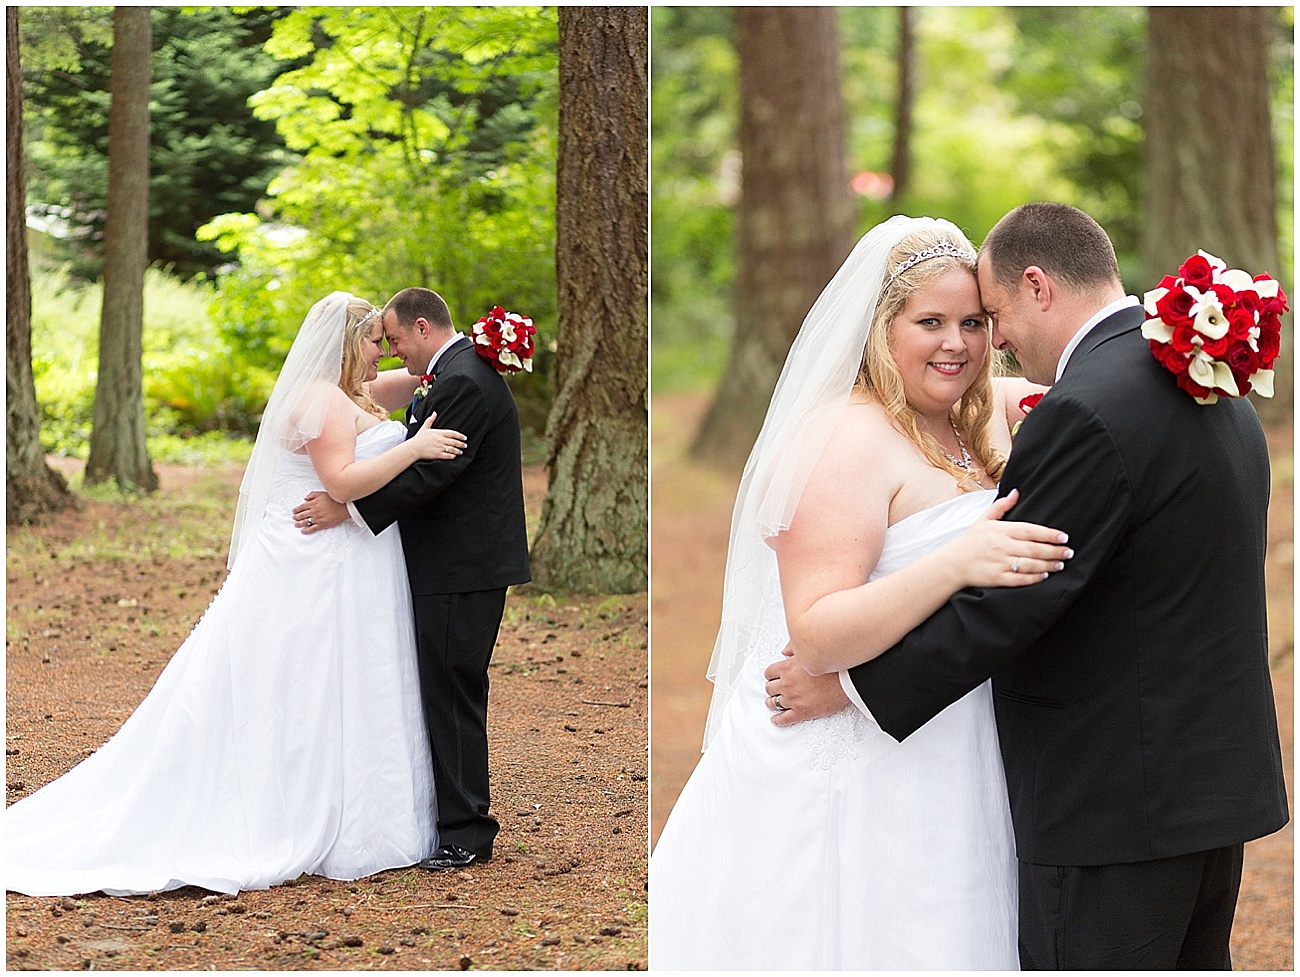 Hux_KitsapMemorialPark_Wedding_0001